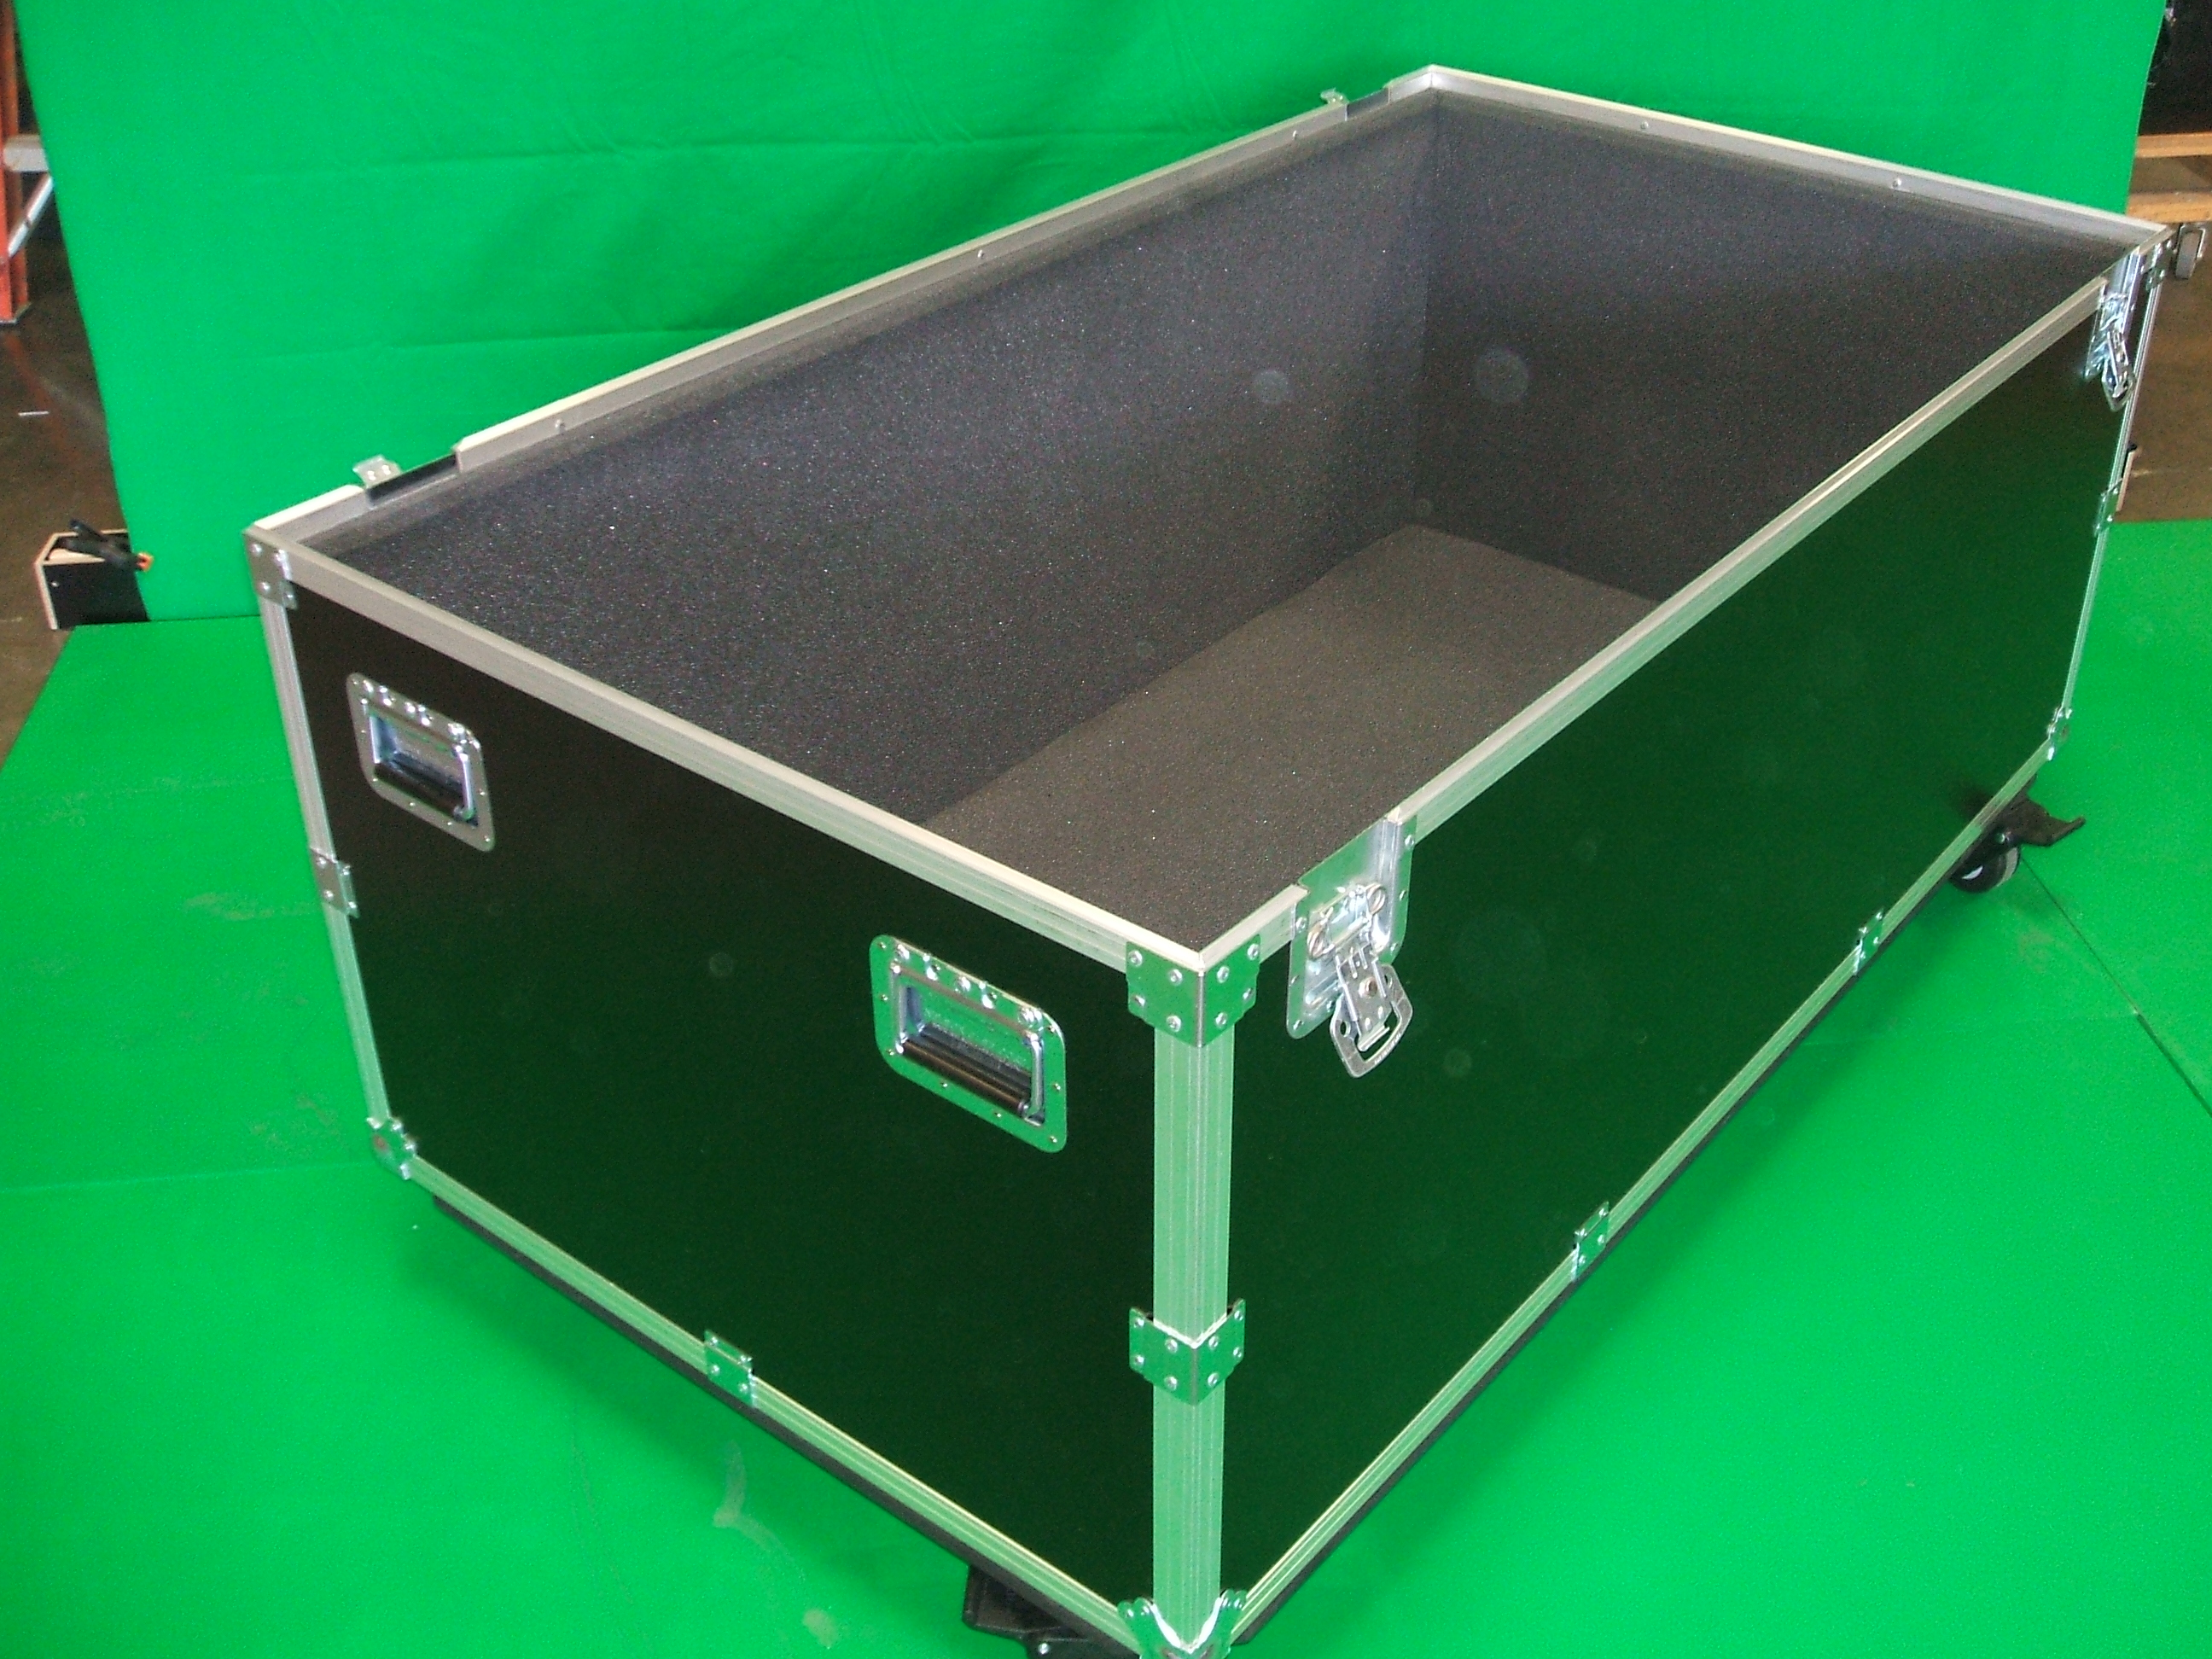 Print # 6017 - Custom Trade Show Display Case for Accessories By Nelson Case Corp